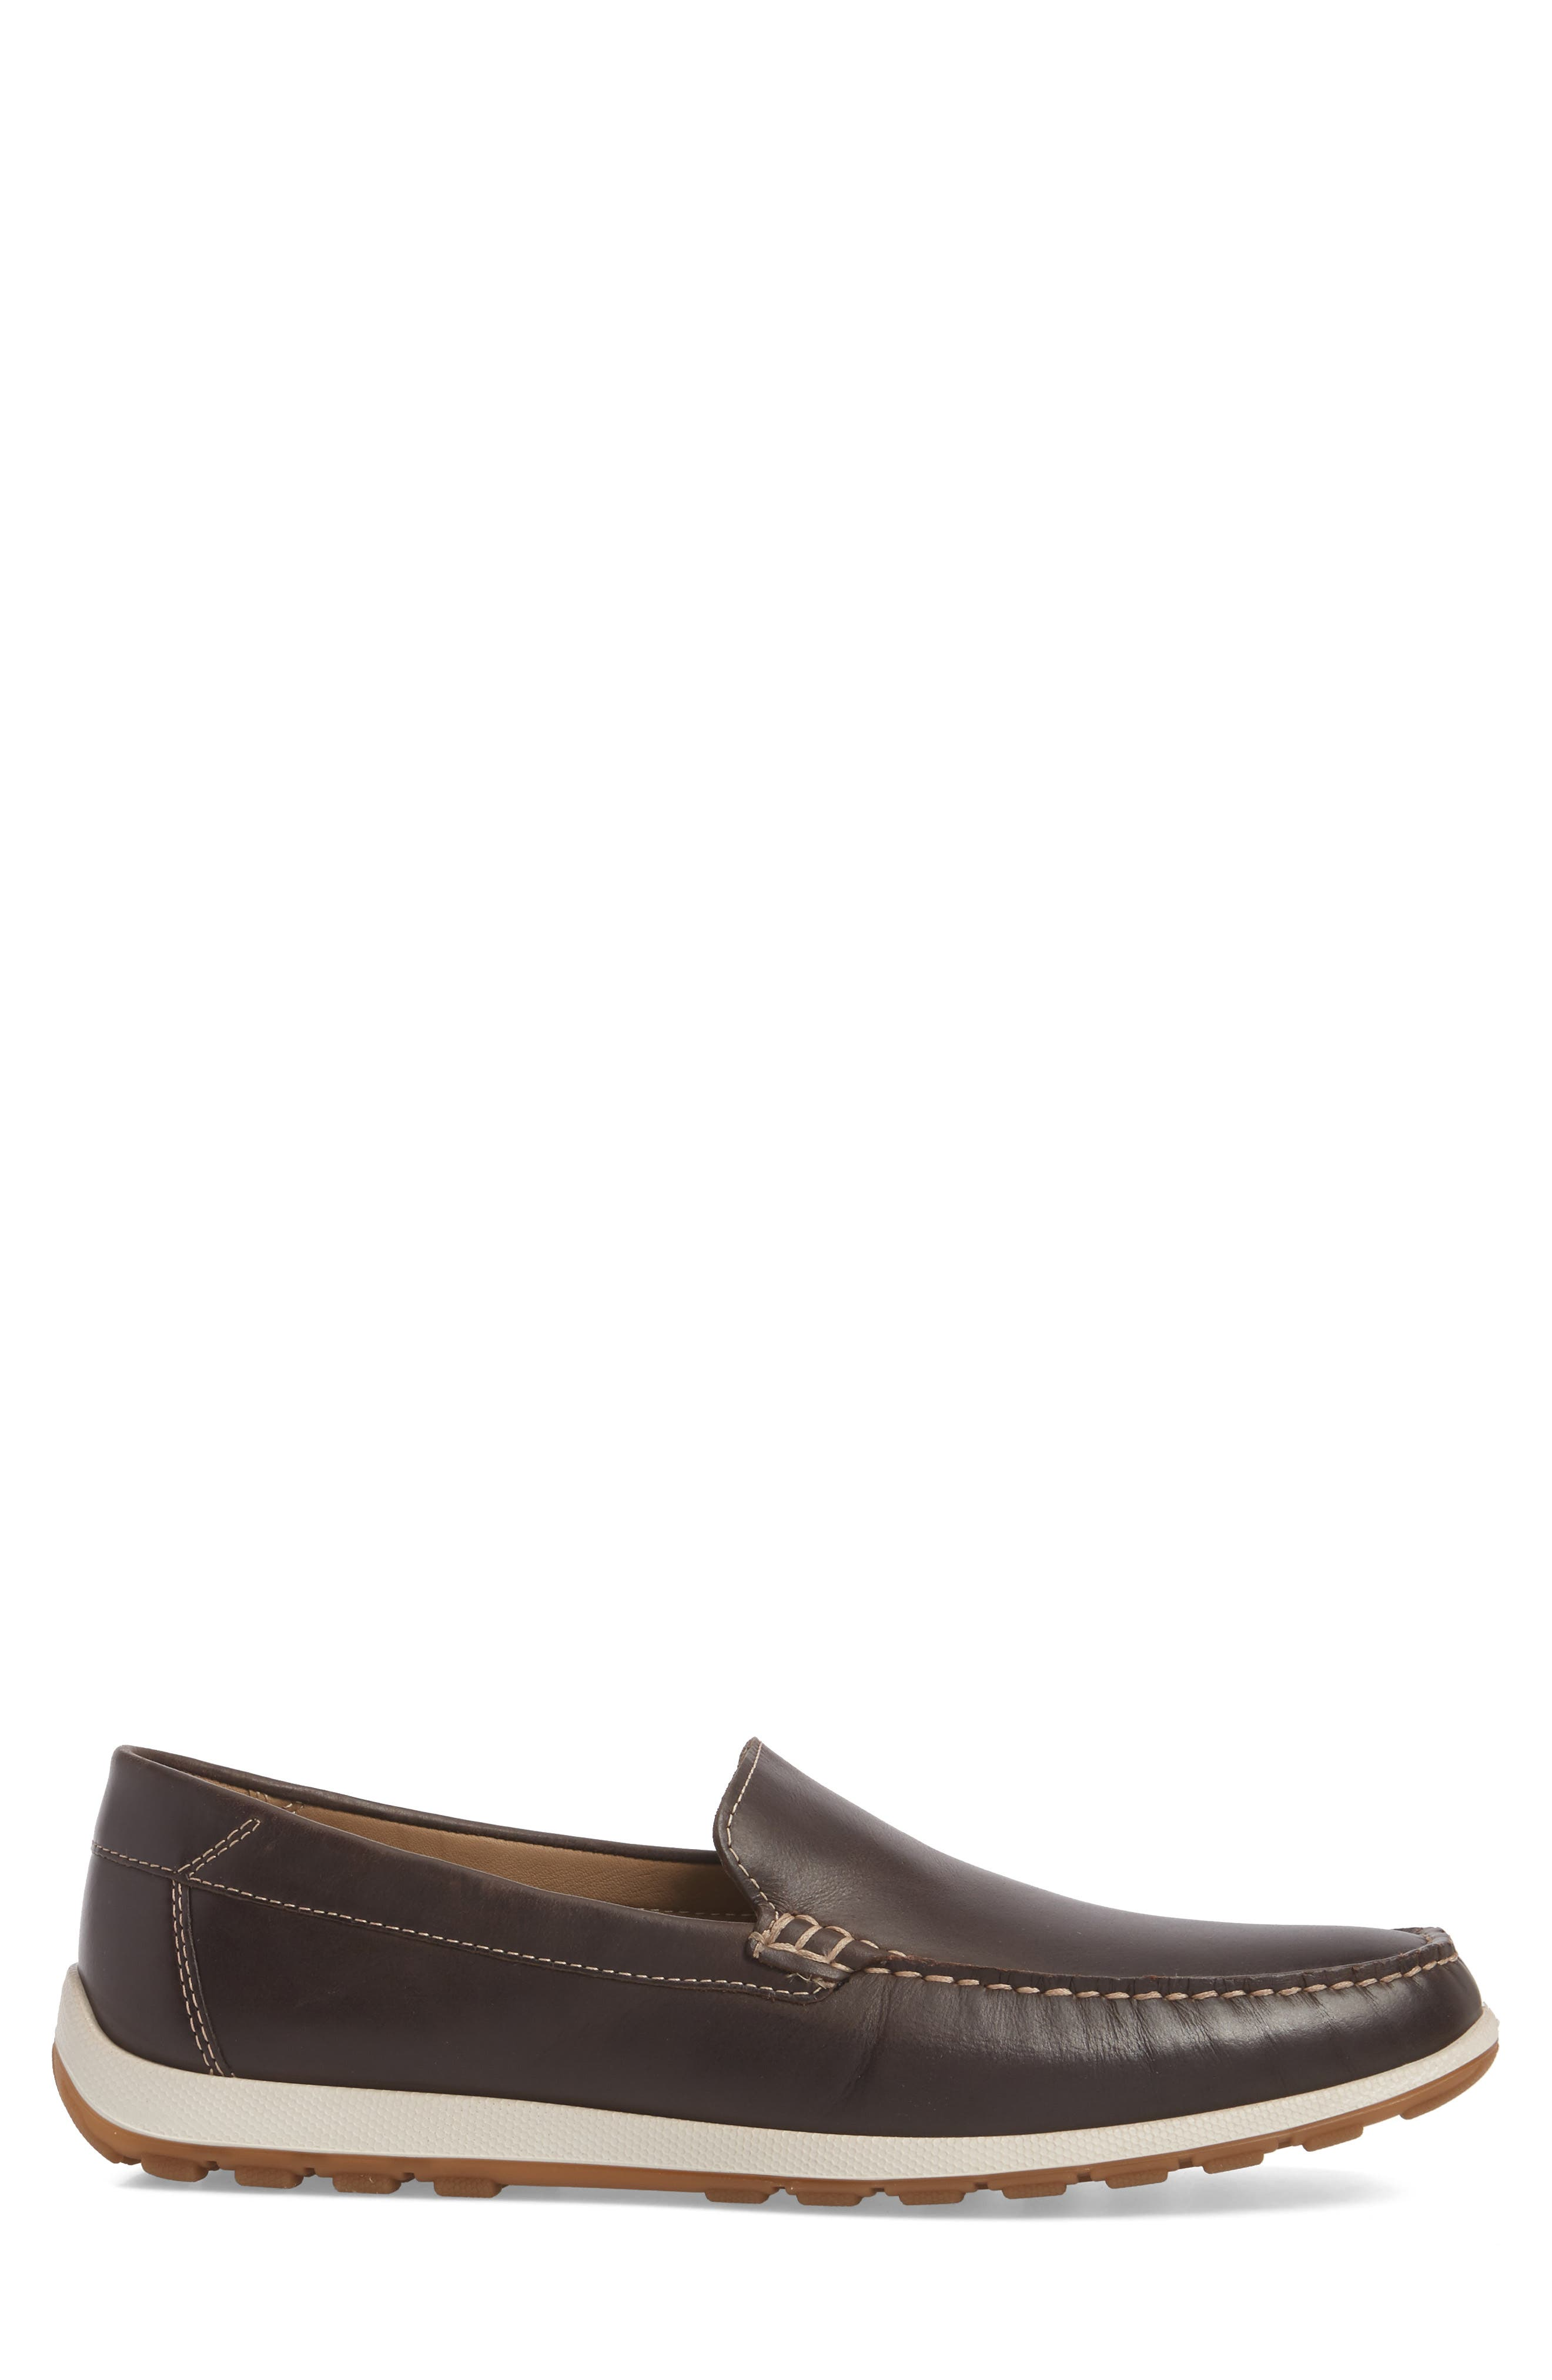 Dip Moc Toe Driving Loafer,                             Alternate thumbnail 6, color,